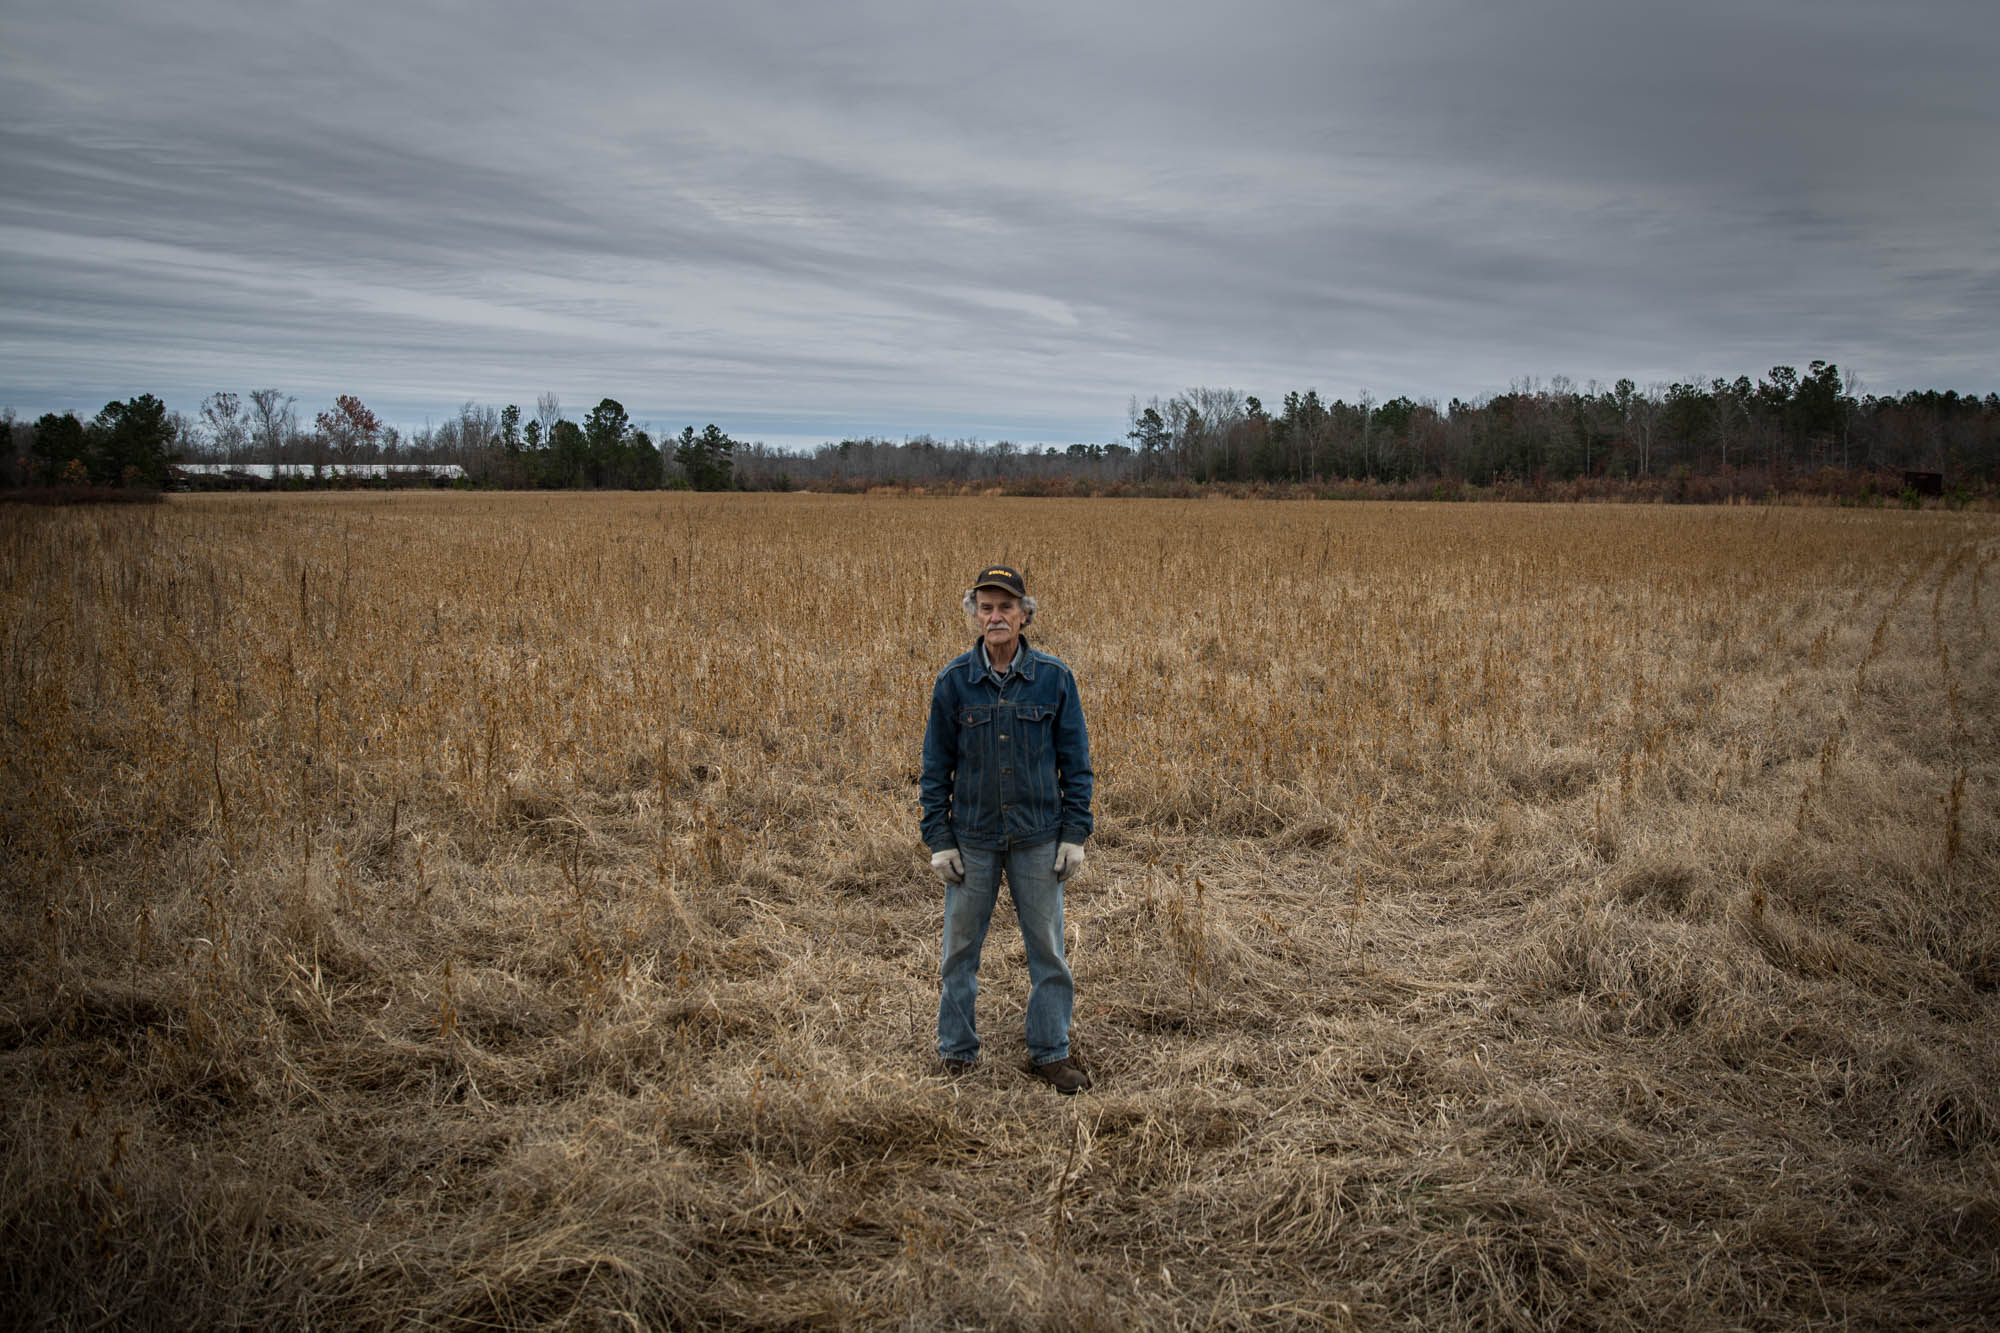 """Winstead poses on his farm. He says that the most outrageous part of all of this is that his rights are being taken away. He views it that the government is taking his land to give to a private company, which is not the point of eminent domain. One of his activist colleagues discusses how the power companies basically told him that he was expendable. """"I'm just upset because it's my community,"""" he said. """"We're not expendable."""""""